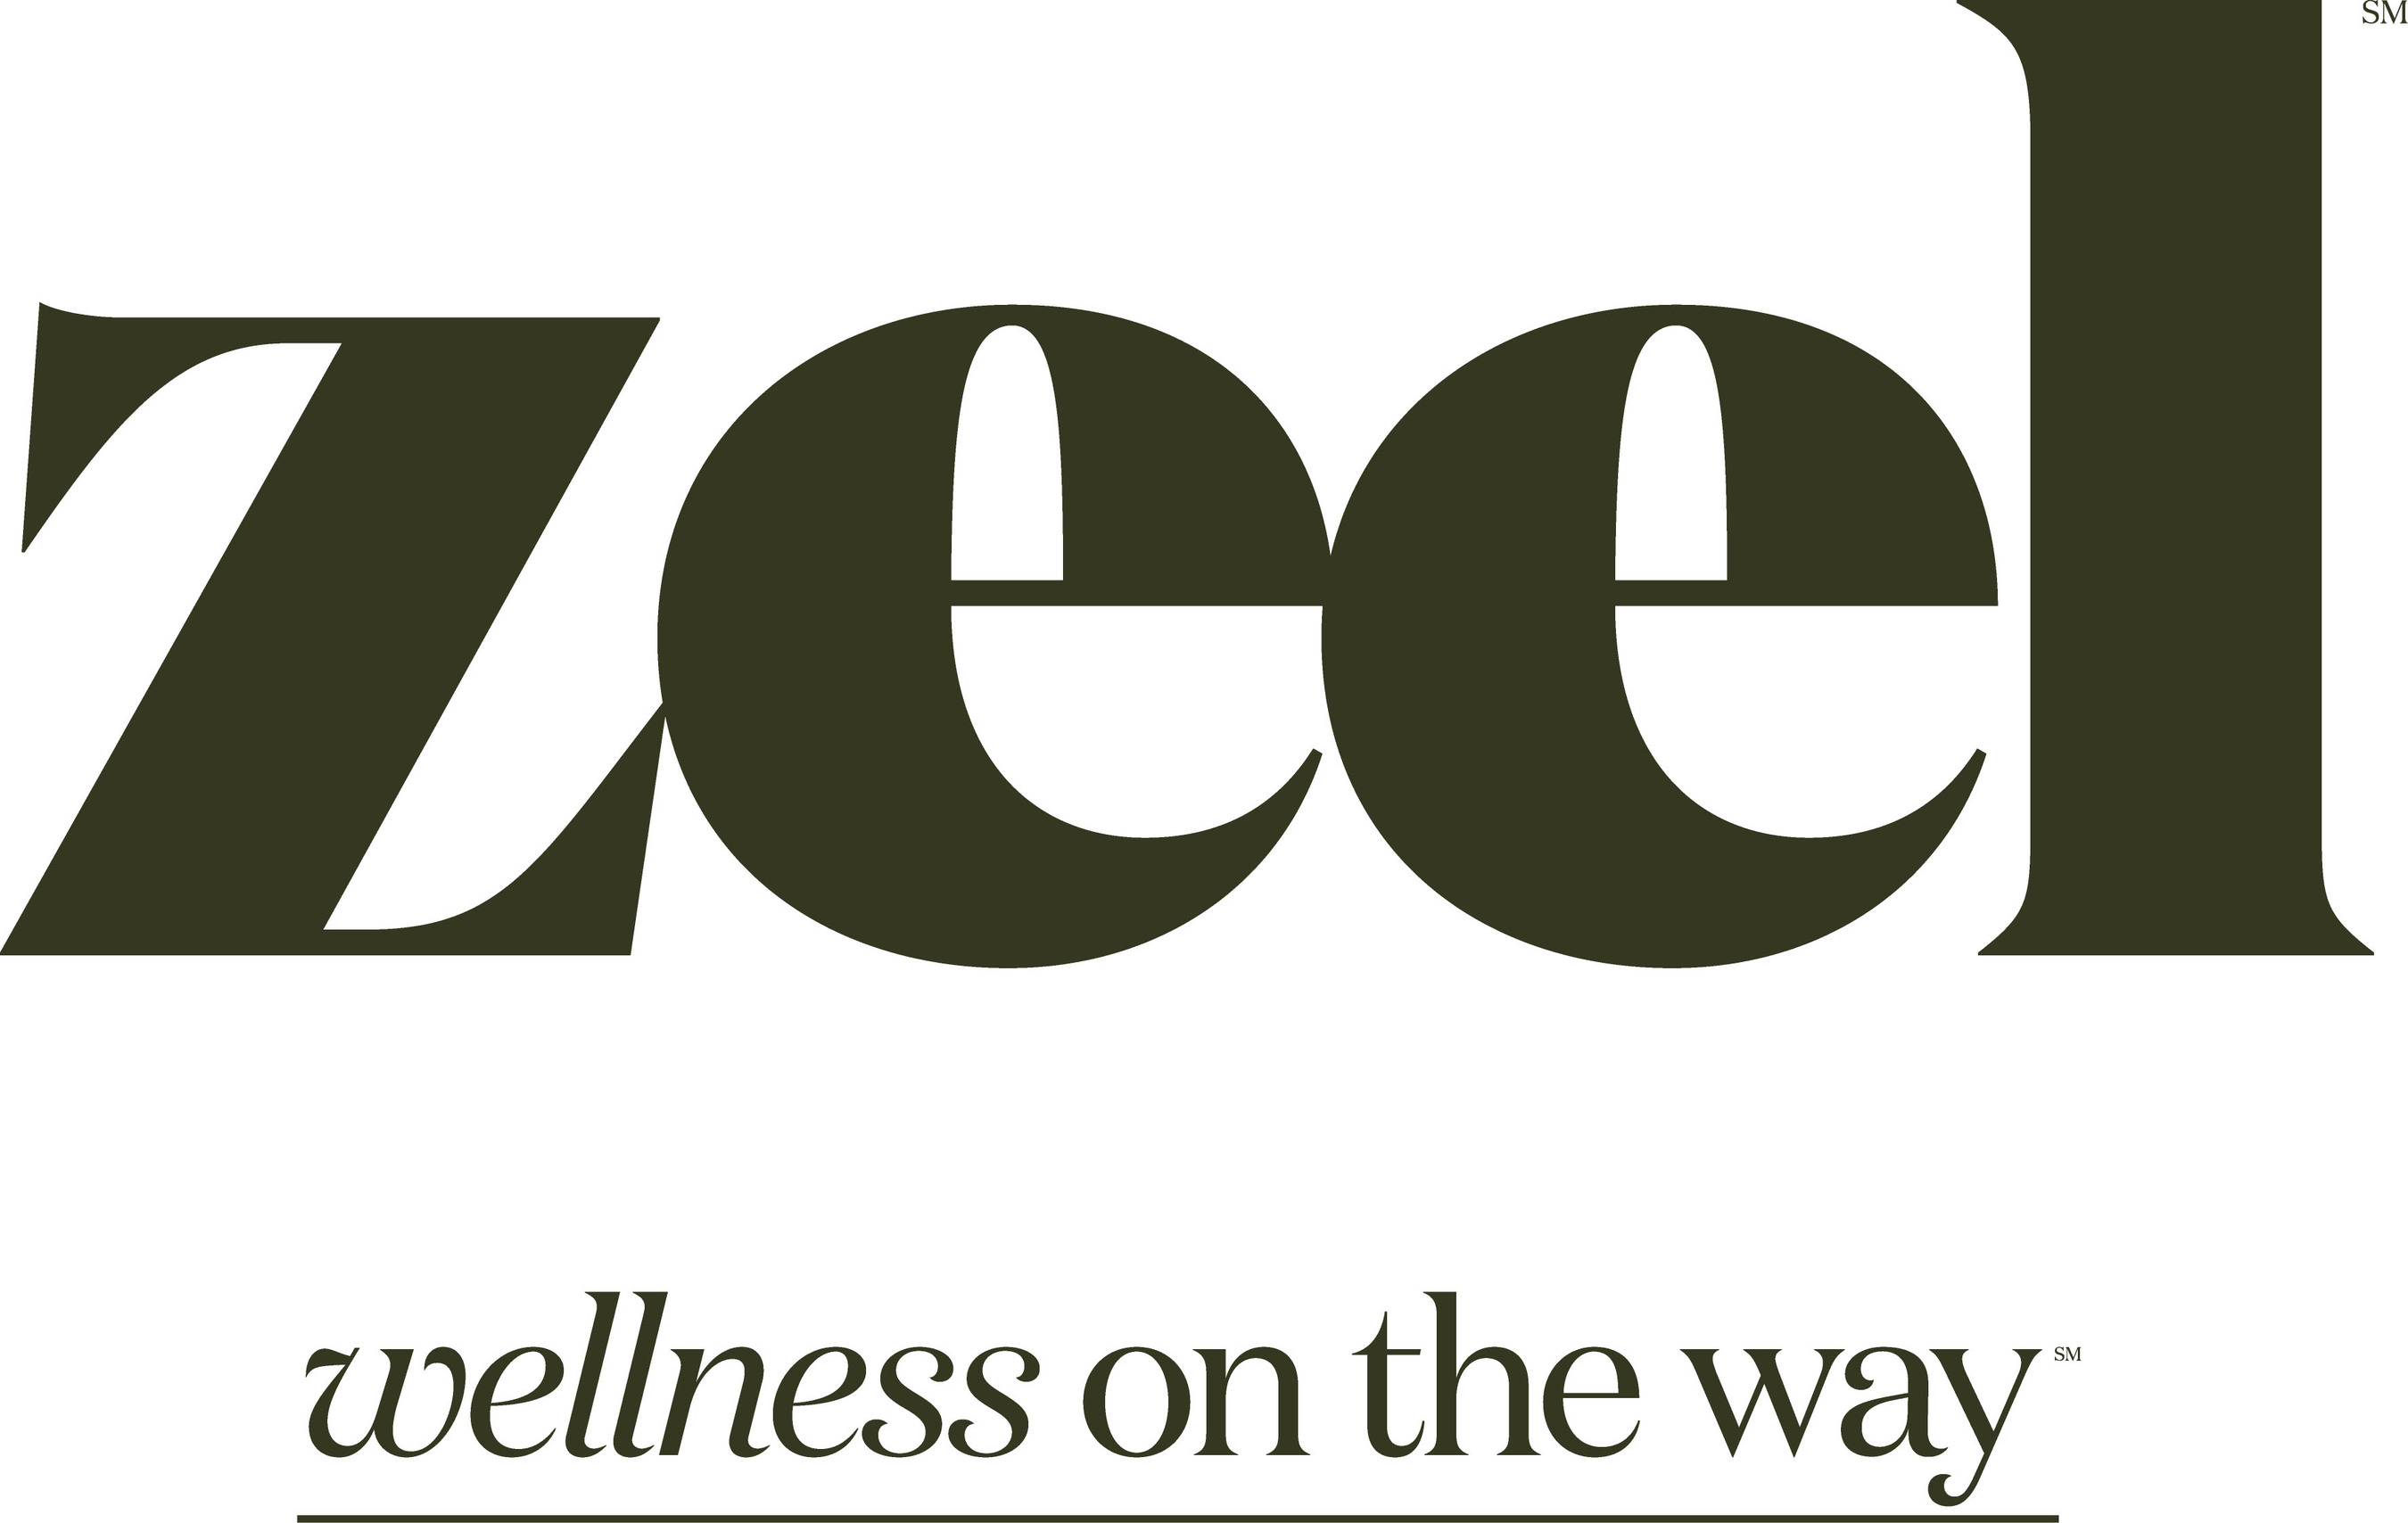 Zeel Launches Zeel Shield for Enhanced Health & Safety Standards